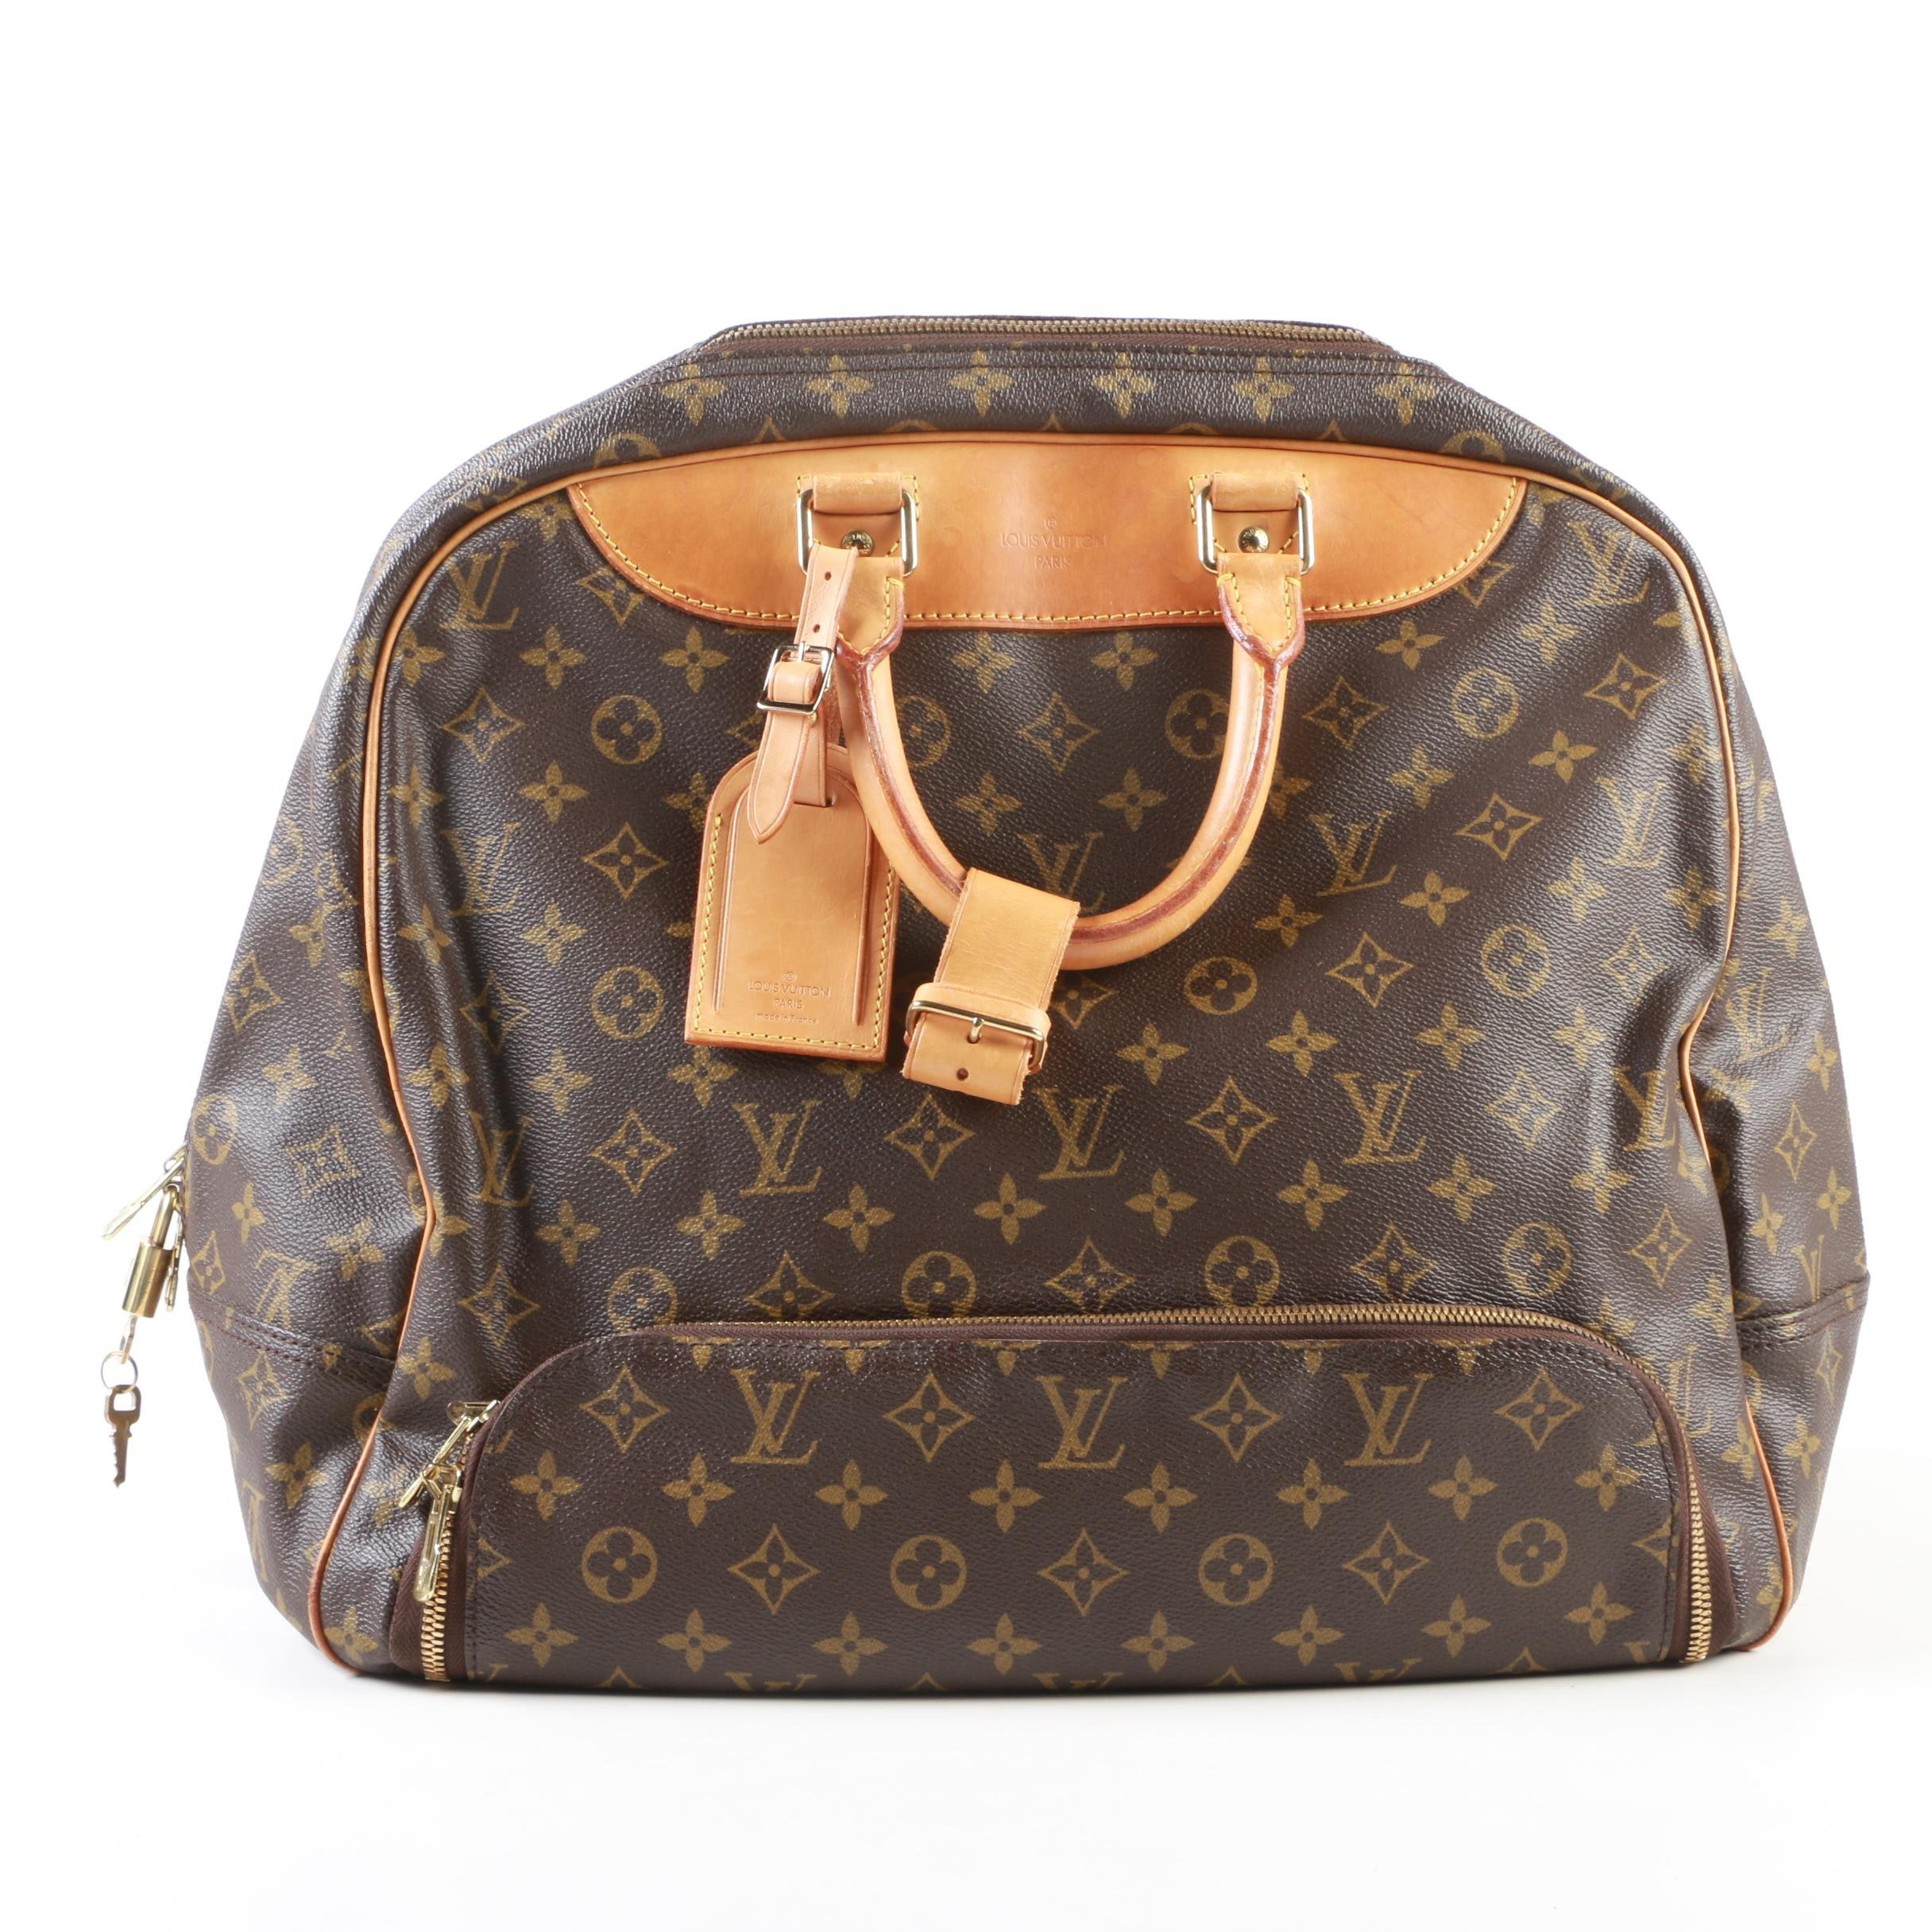 Louis Vuitton Paris Evasion Travel Bag in Monogram Canvas